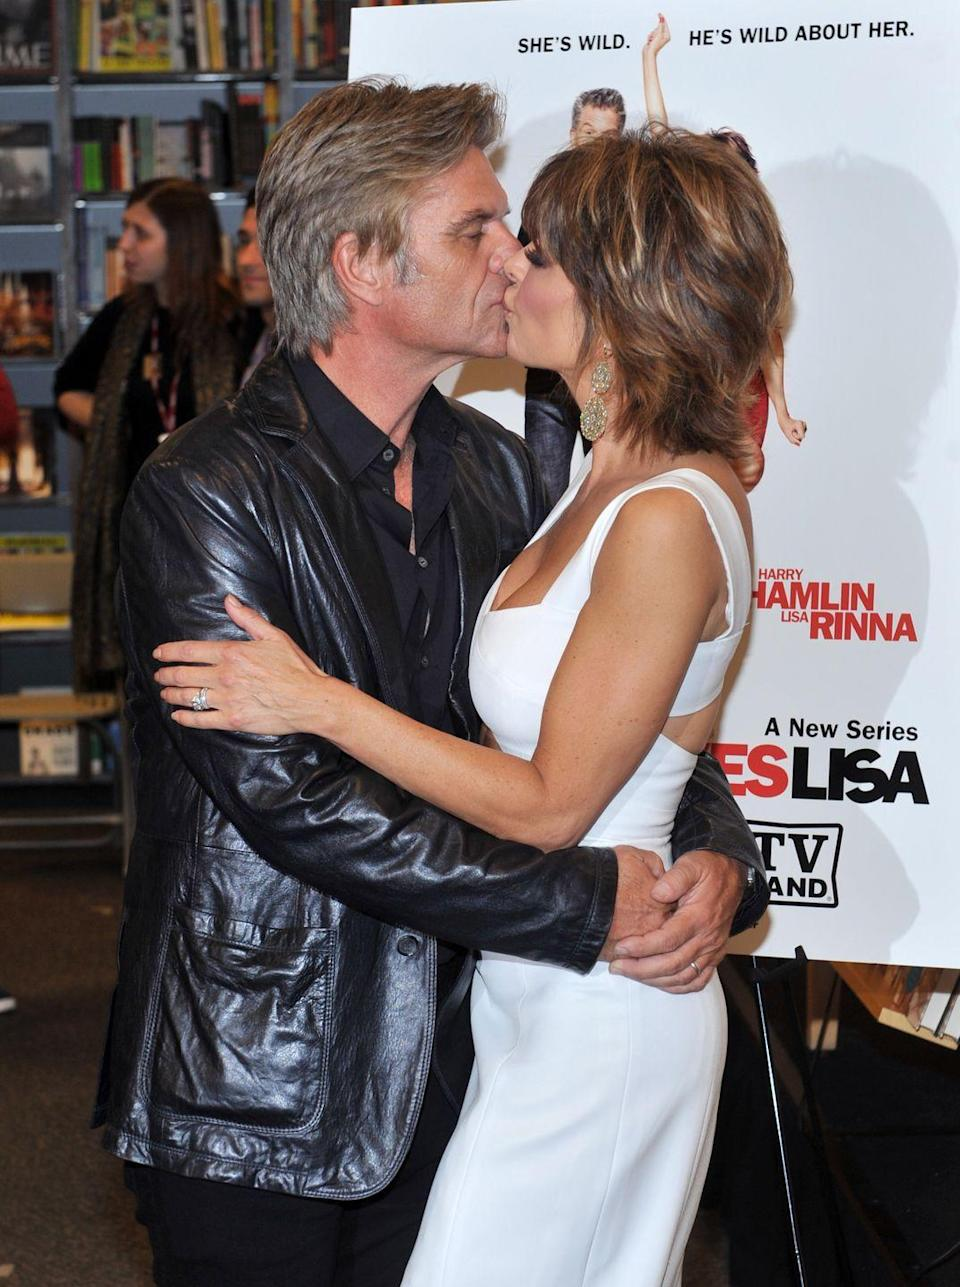 "<p>Any <em>Real Housewives of Beverly Hills </em>fans out there? If so, you already know Lisa Rinna (who plays Lynn Echolls, Aaron Echolls' wife in <em>Veronica Mars</em>) is <a href=""https://www.bravotv.com/the-daily-dish/lisa-rinna-harry-hamlin-22nd-wedding-anniversary-celebration"" rel=""nofollow noopener"" target=""_blank"" data-ylk=""slk:Harry's wife in real life"" class=""link rapid-noclick-resp"">Harry's wife in real life</a>. They got married in 1997, seven years before the premiere of <em>Veronica Mars</em>.</p>"